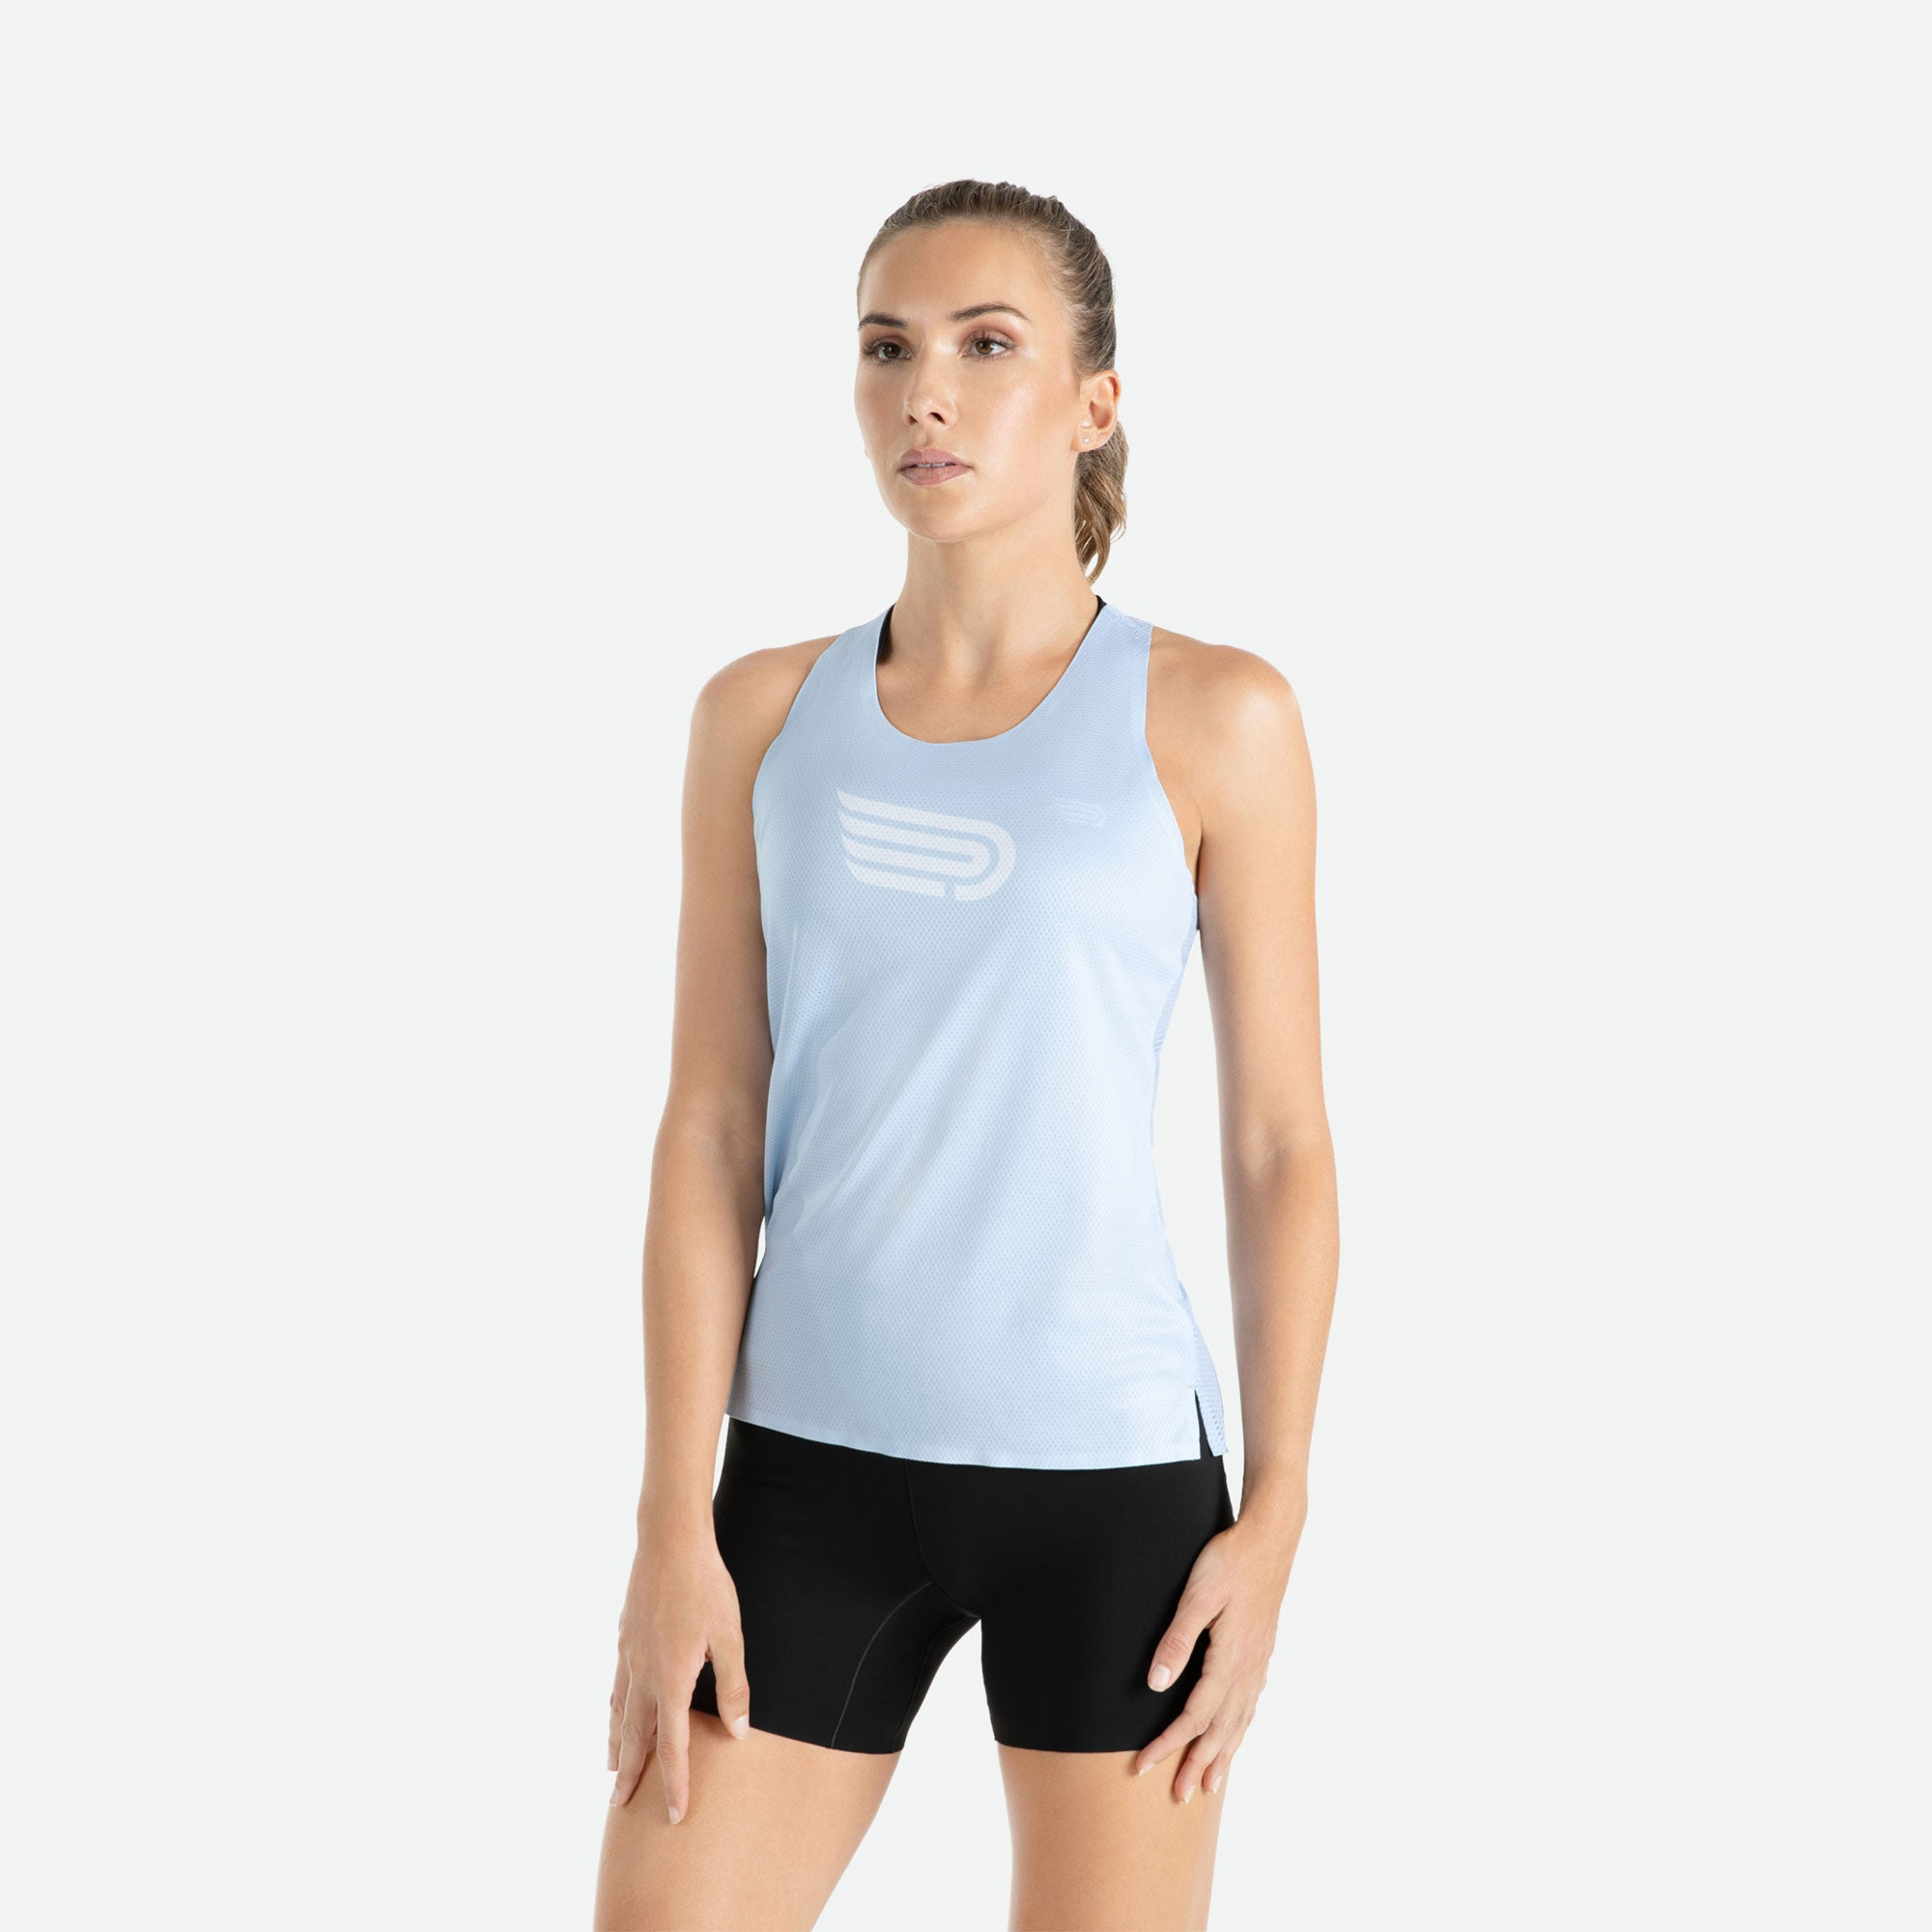 Engineered 3D vent mesh structure for optimal ventilation on the back of our Pressio women's Ārahi light blue/white singlet.